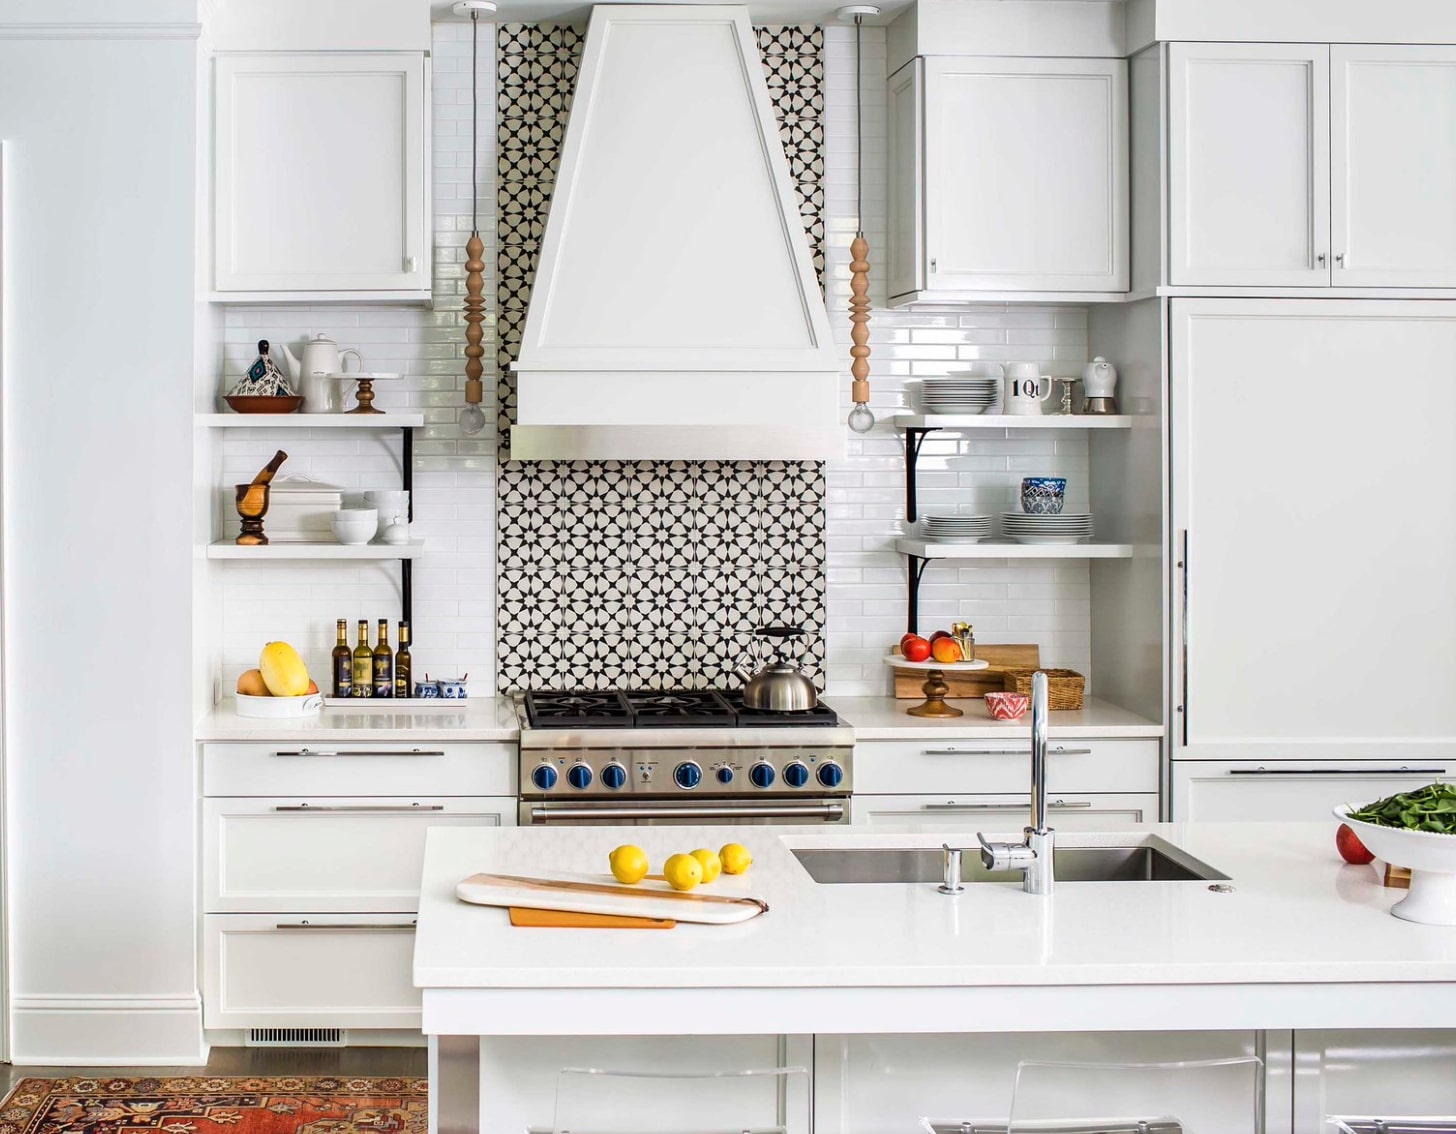 squarerooms-kitchen-backsplash-patterned-tiles